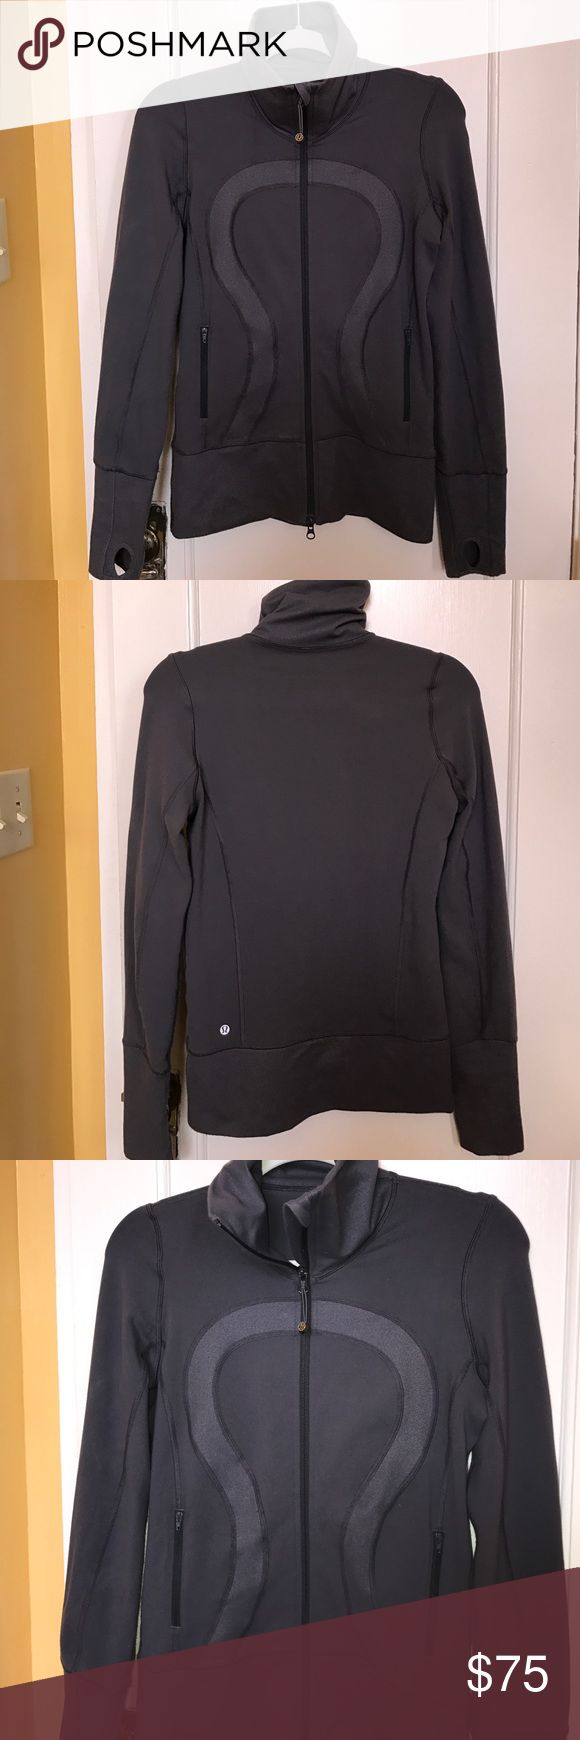 "LULULEMON Athletic Define Full Zip Gray Jacket Sz4 LULULEMON in good preowned condition. Looks very tailored and structured. 87% nylon, 13% Lycra spandex. 18"" armpit to armpit, 25"" length, 38"" sleeves lululemon athletica Jackets & Coats"